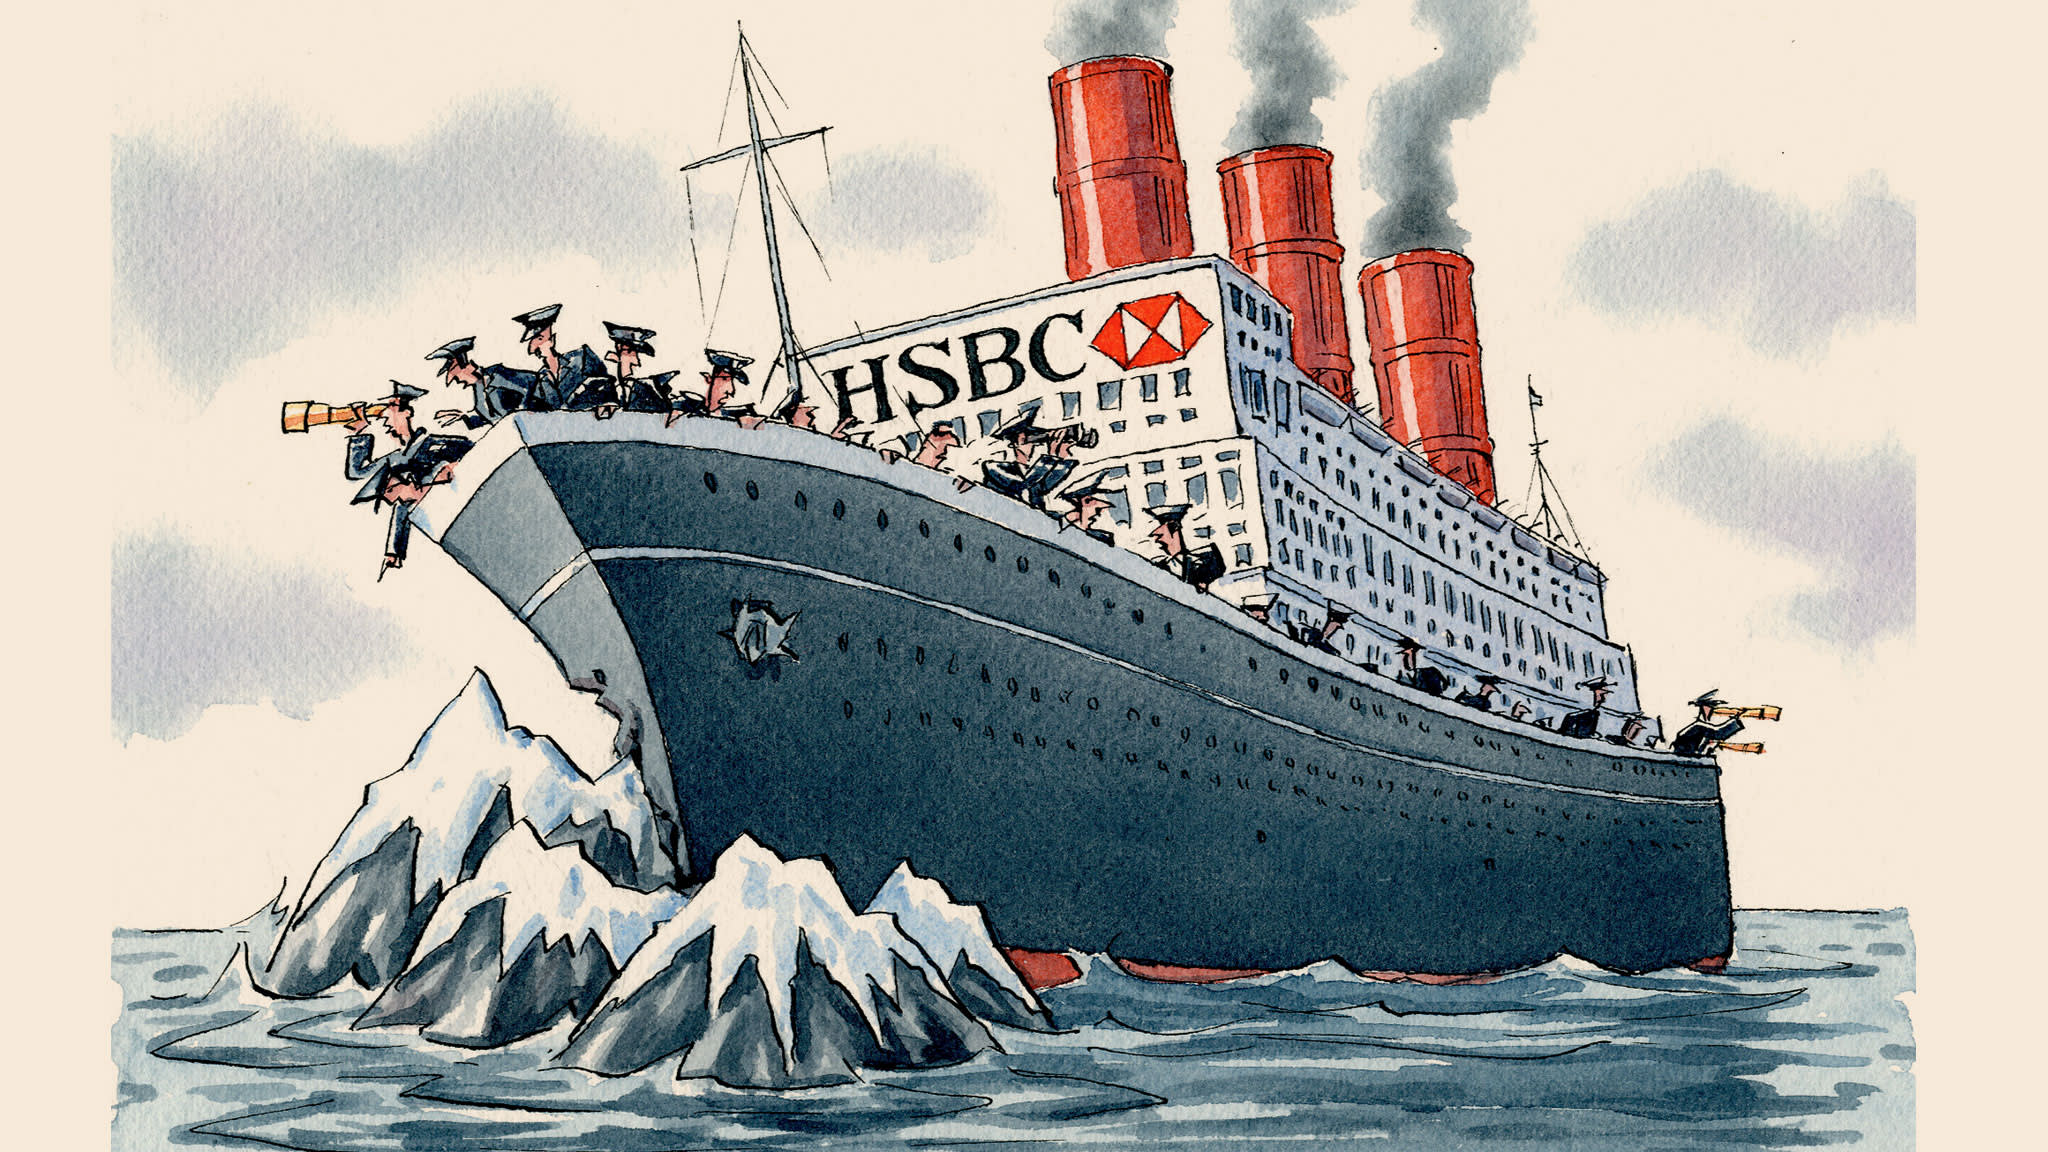 HSBC, the bank that ran aground while overseas | Financial Times